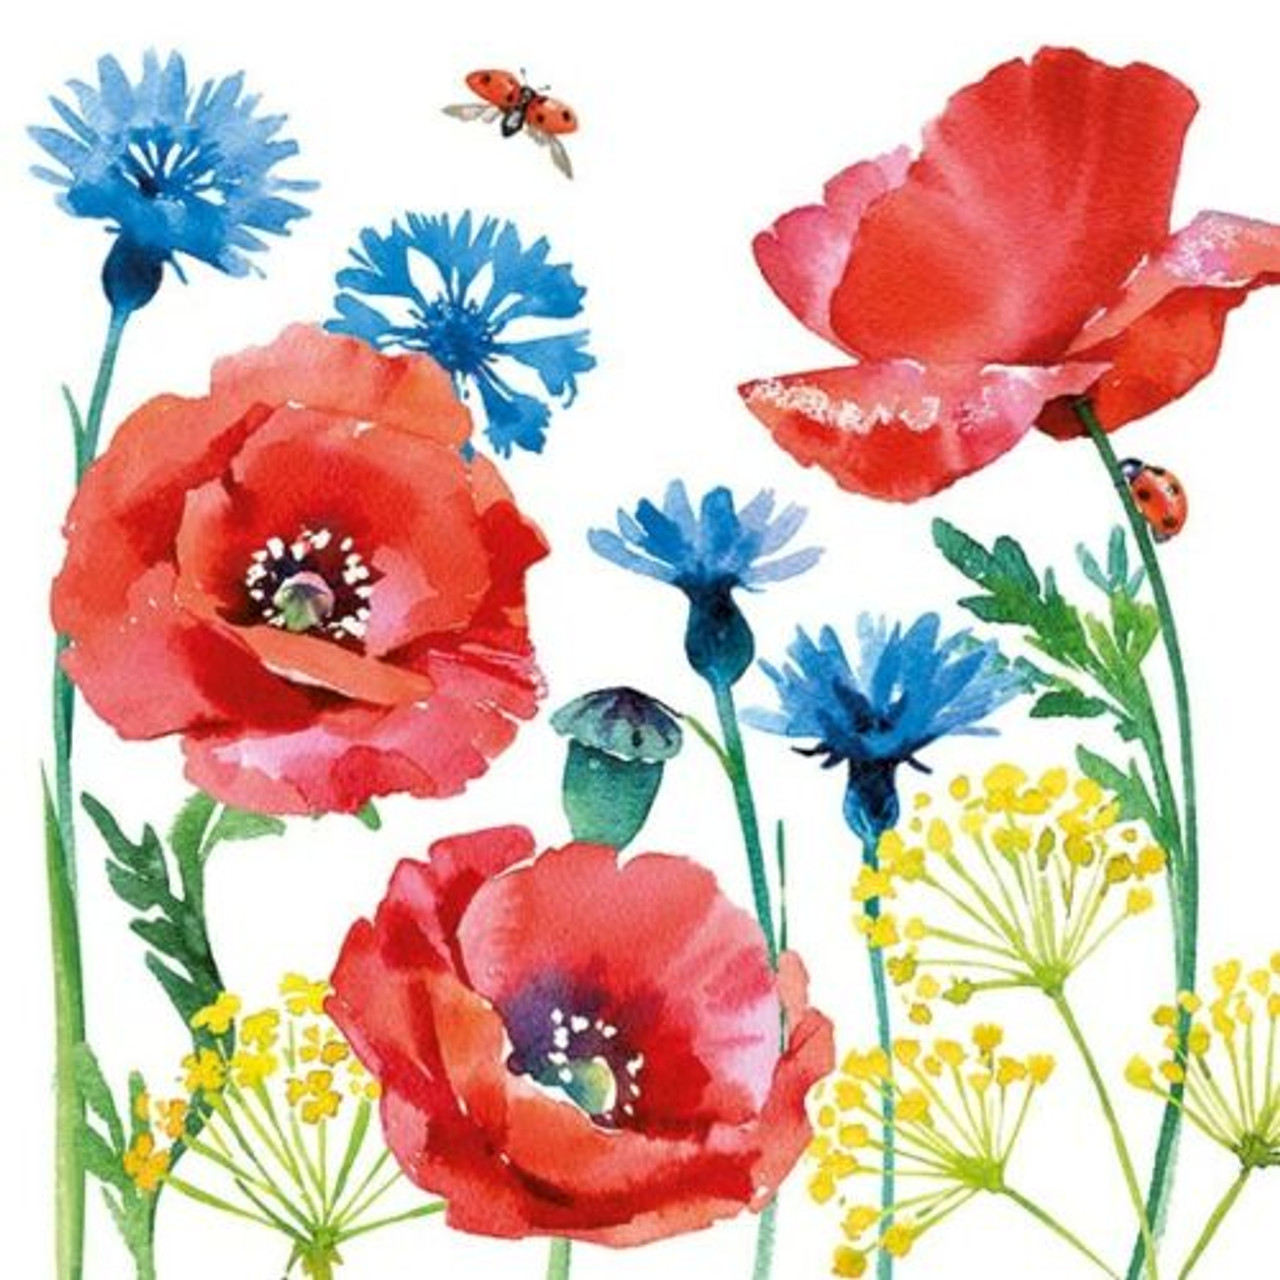 4 Single Paper Napkins for Decoupage Poppy Drawing Red Fowers